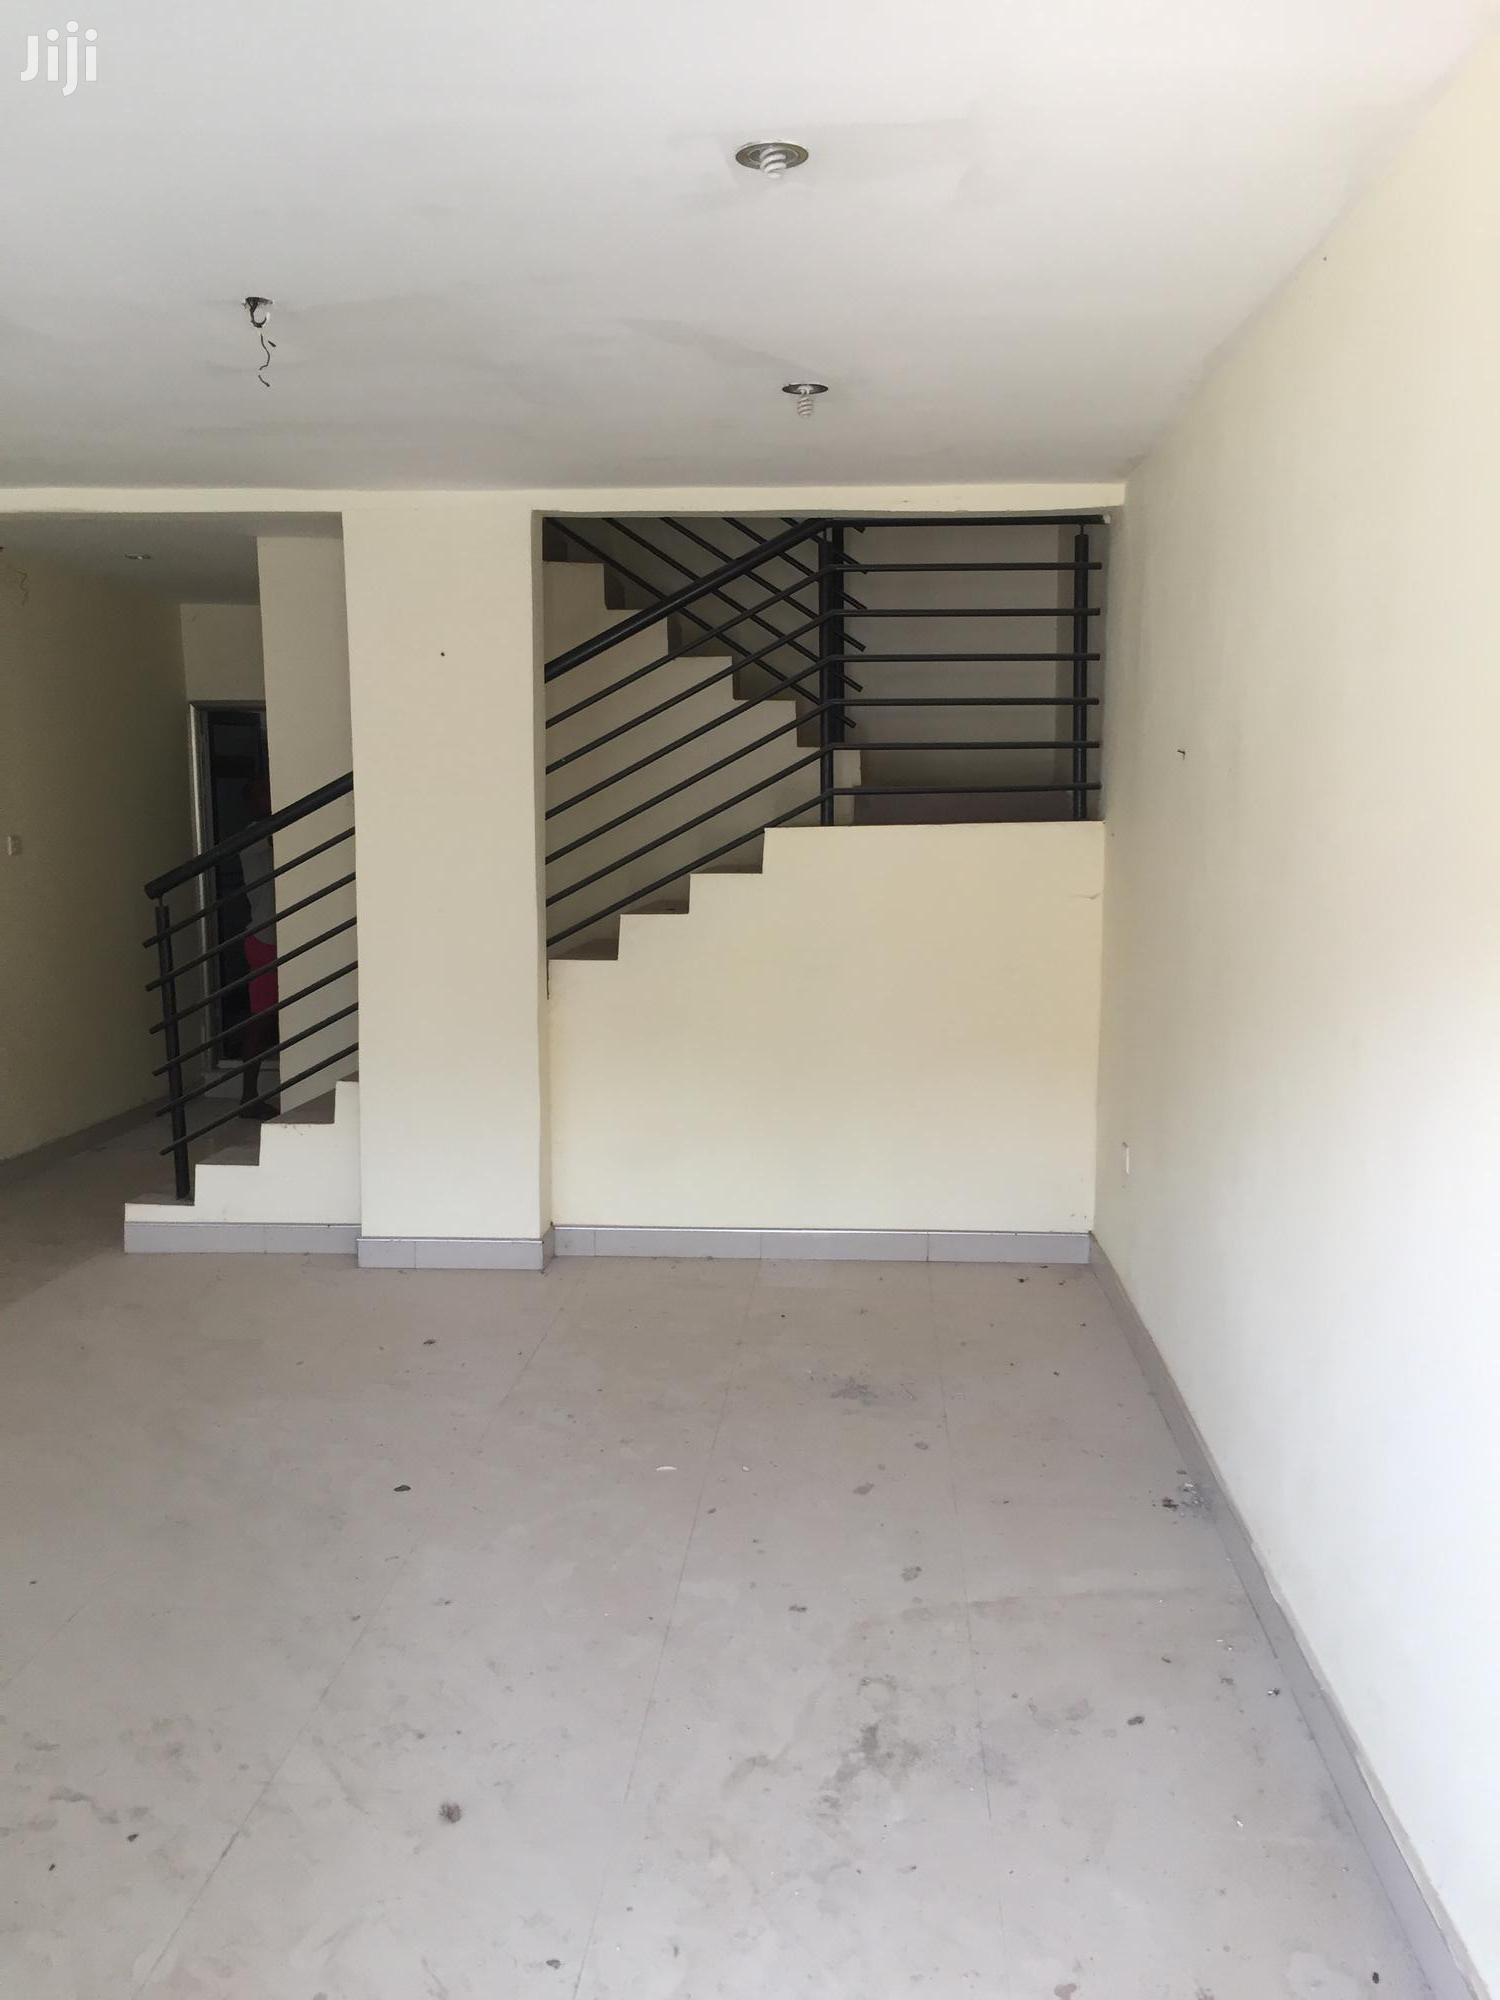 2 Bedroom Duplex House Santeo | Houses & Apartments For Rent for sale in Ashaiman Municipal, Greater Accra, Ghana